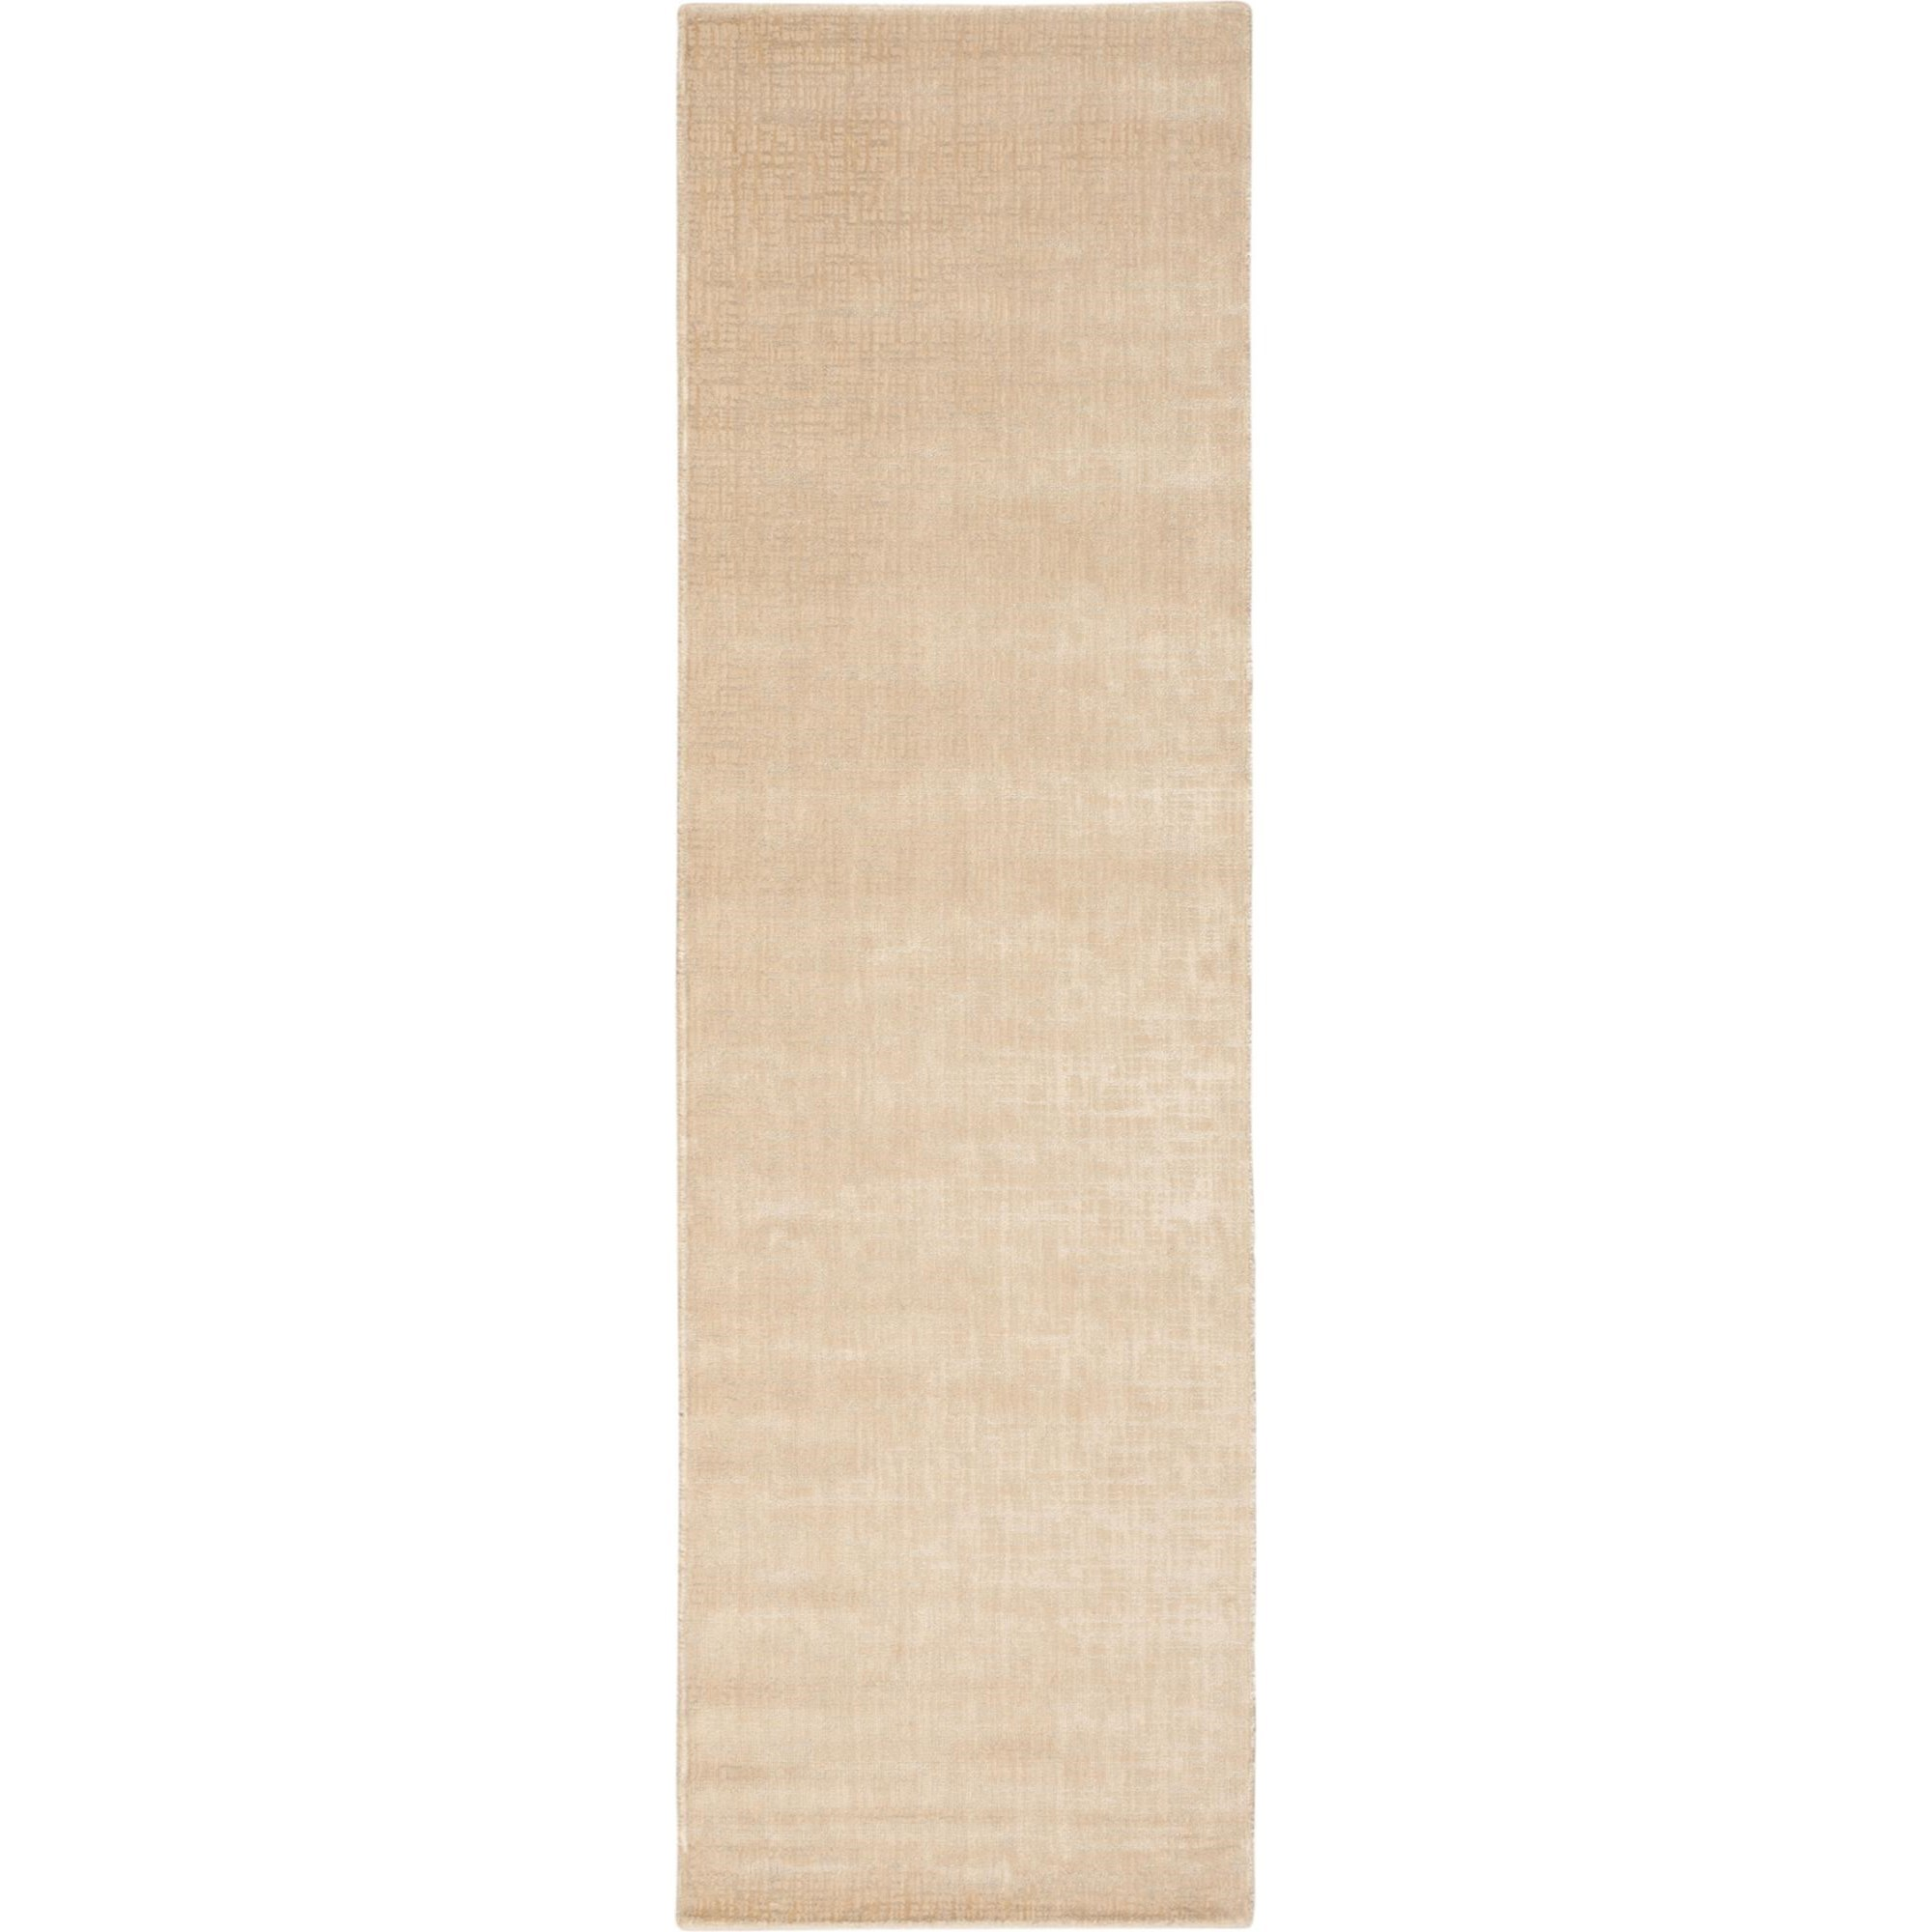 """Nourison Starlight 2'3"""" x 8' Oyster Area Rug - Item Number: 18767"""